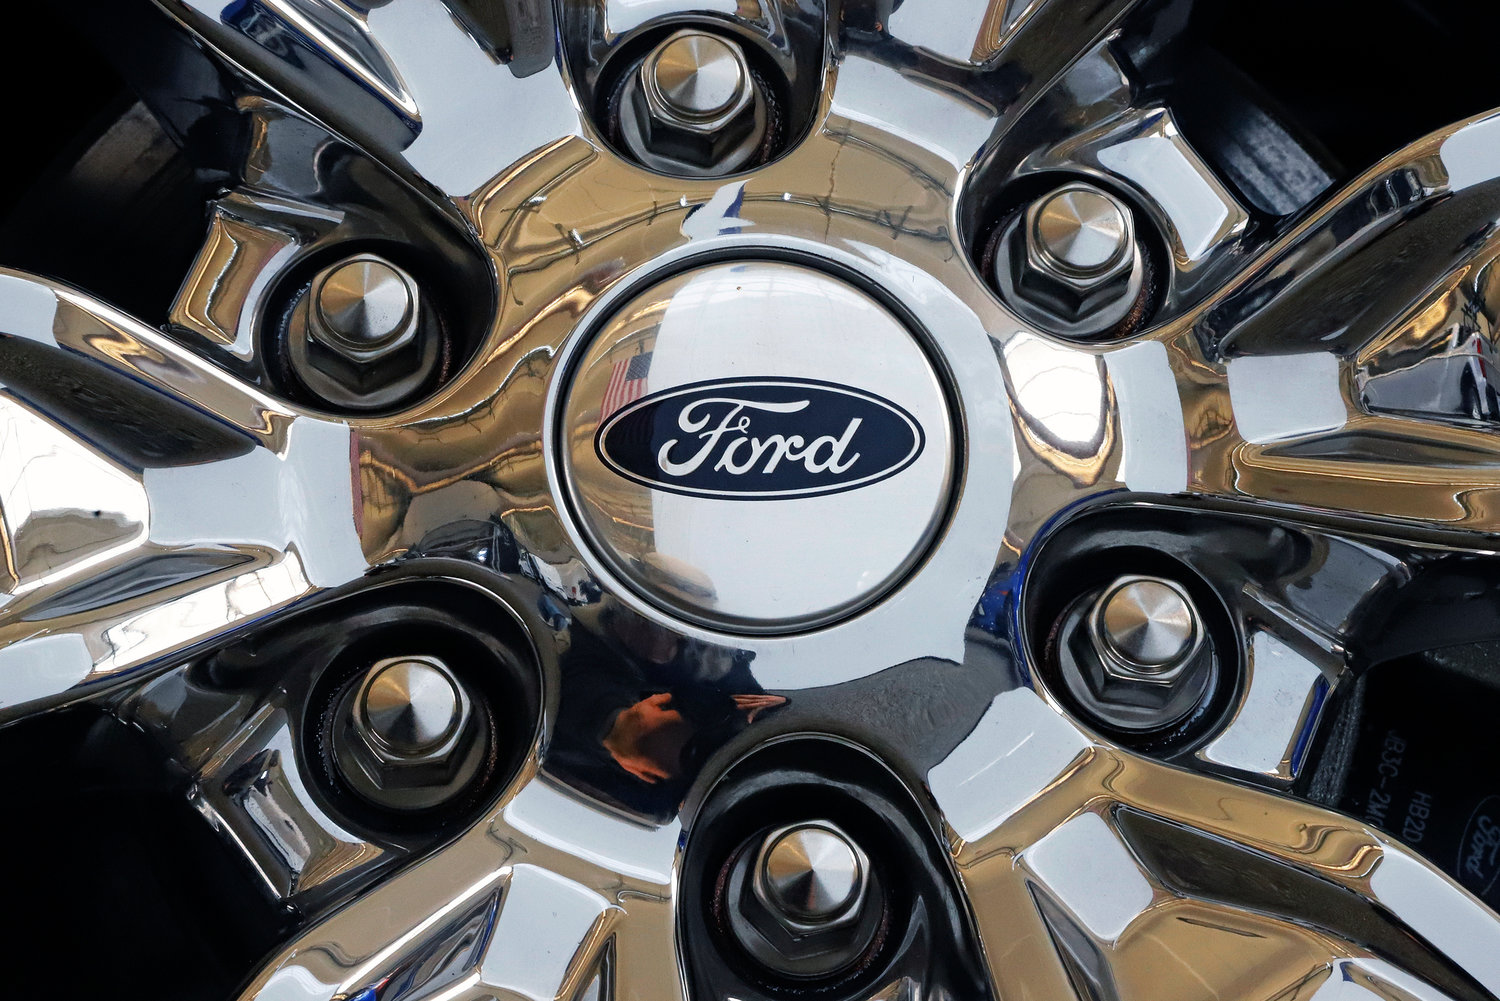 In this Feb. 14, 2019, file photo a wheel on a 2019 Ford Expedition 4x4 is displayed at the 2019 Pittsburgh International Auto Show in Pittsburgh. Members of the United Auto Workers union at Ford Motor Co. have voted to approve a new contract with the company. The union says in a statement Friday, Nov. 15, 2019,  that 56.3% of workers who voted were in favor of the deal. (AP Photo/Gene J. Puskar, File)